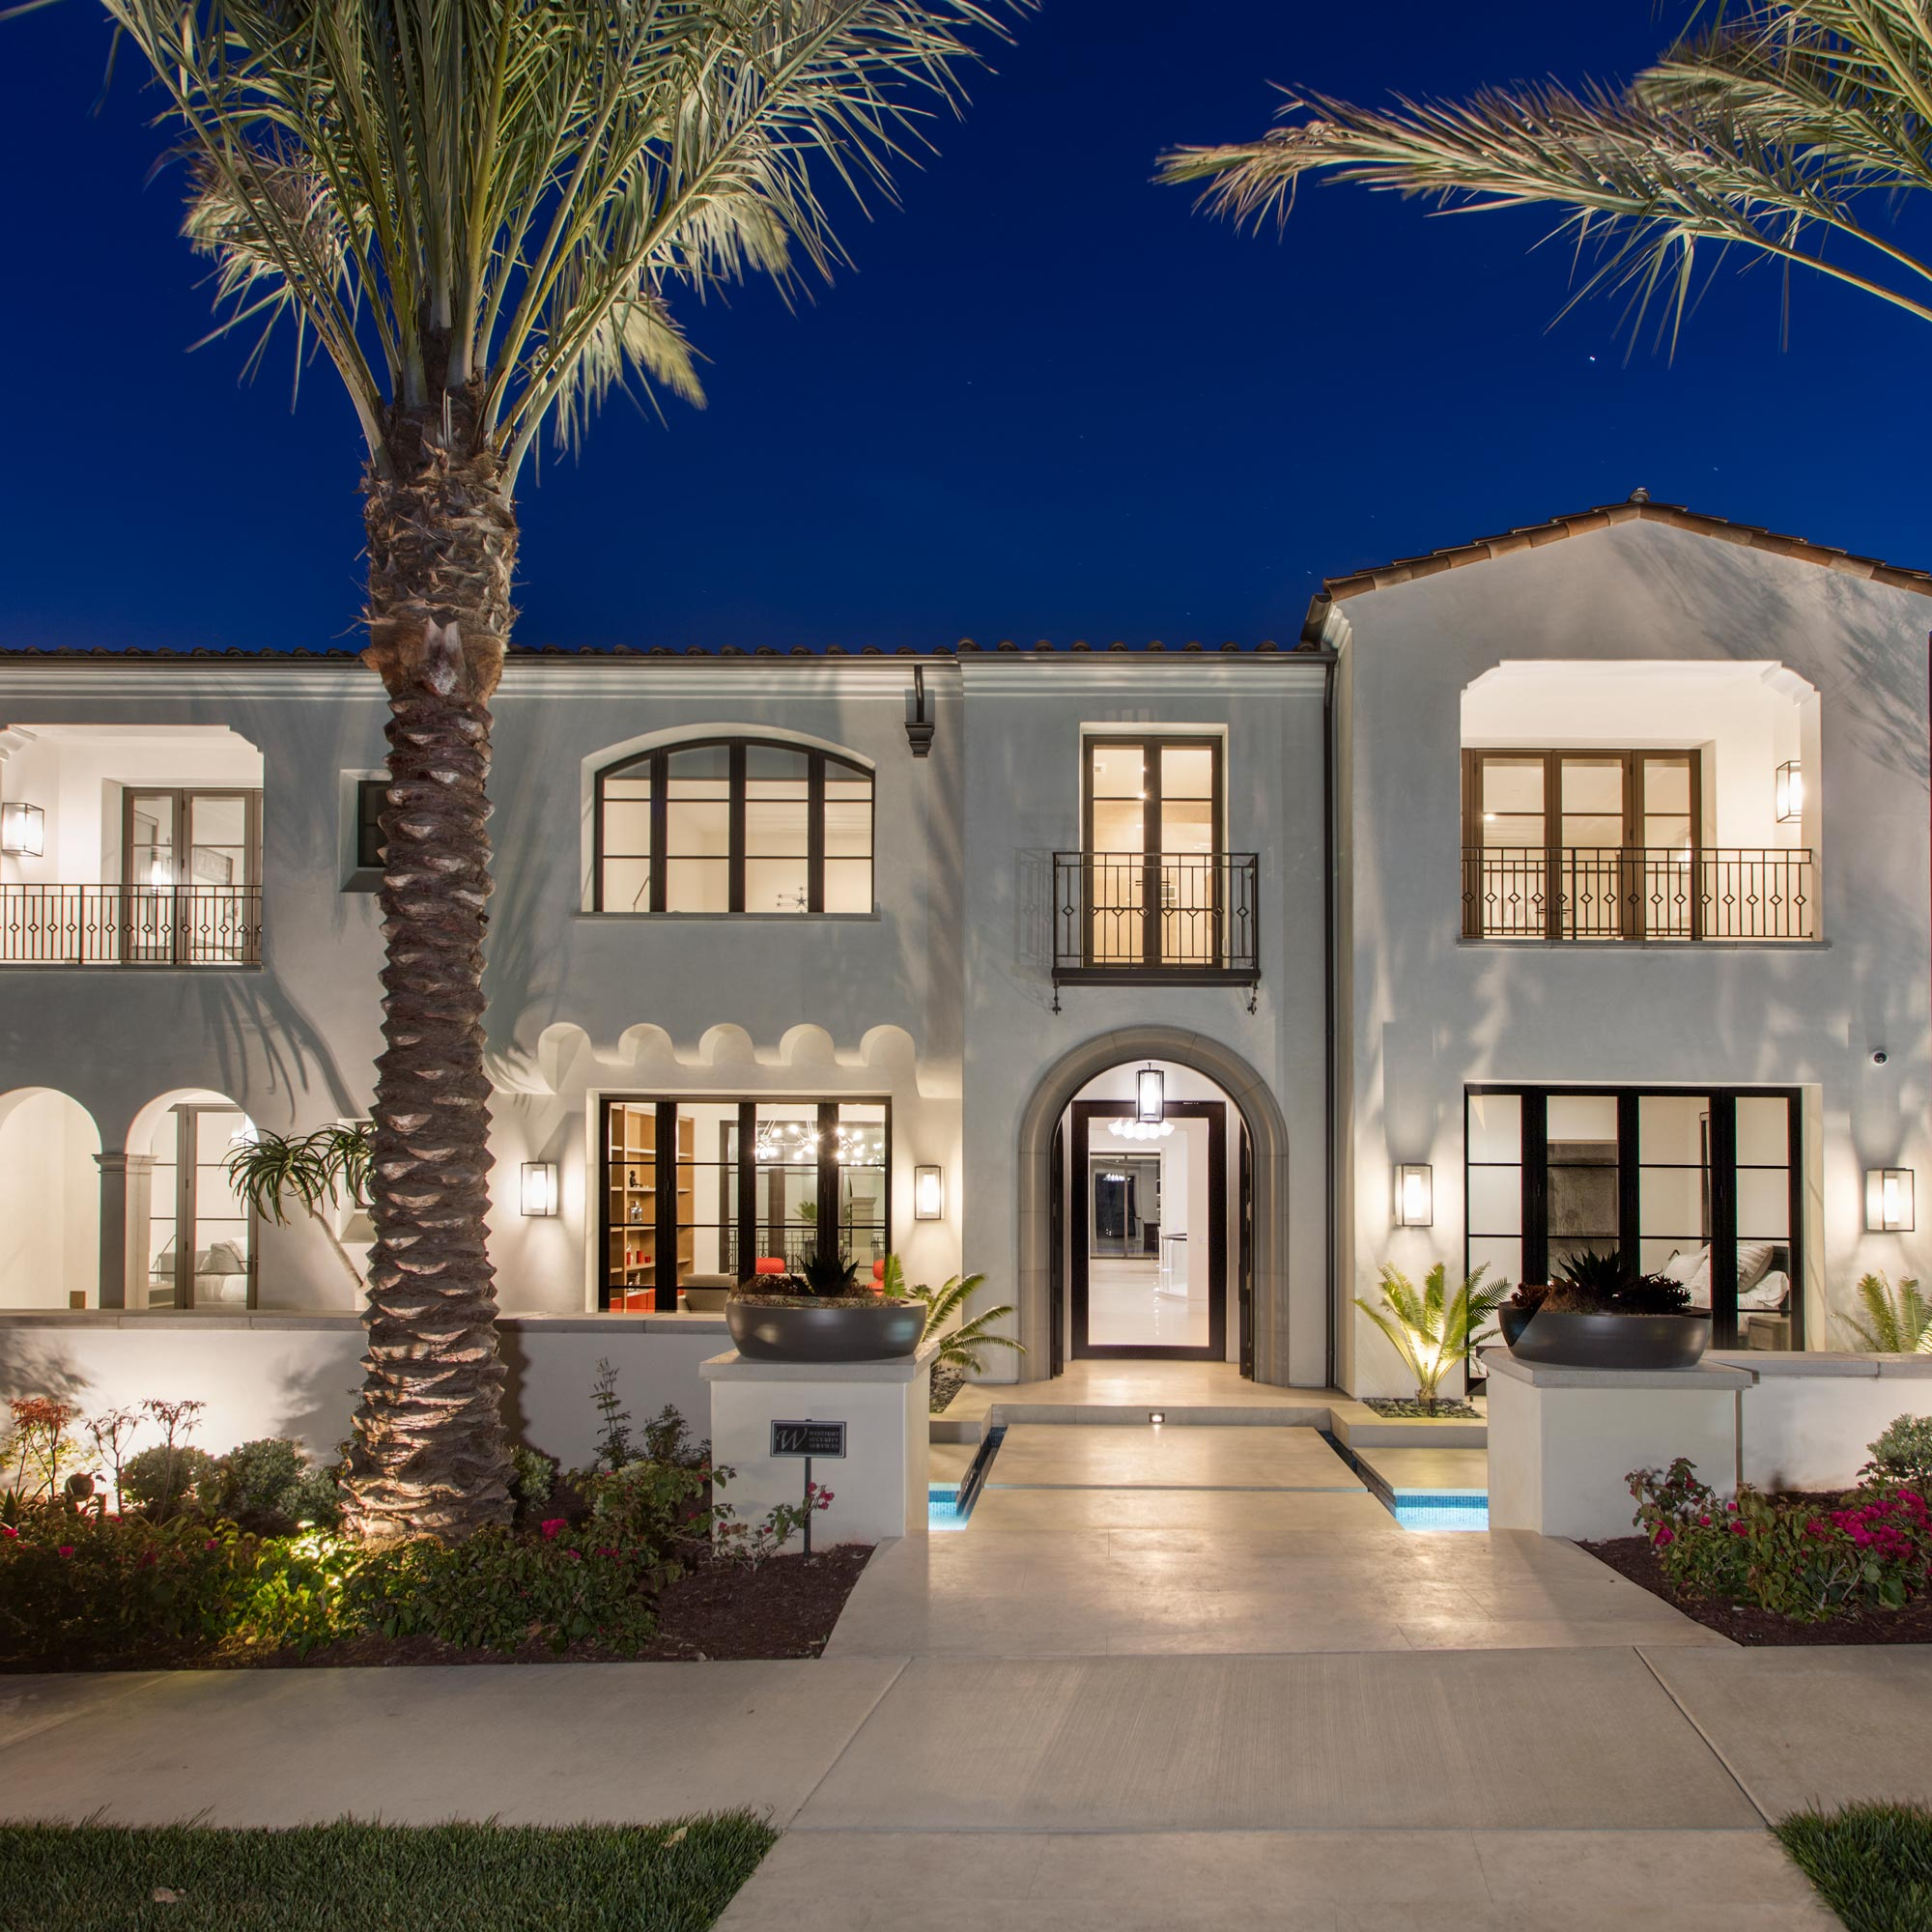 Crystal Cove - Contemporary Spanish Revival